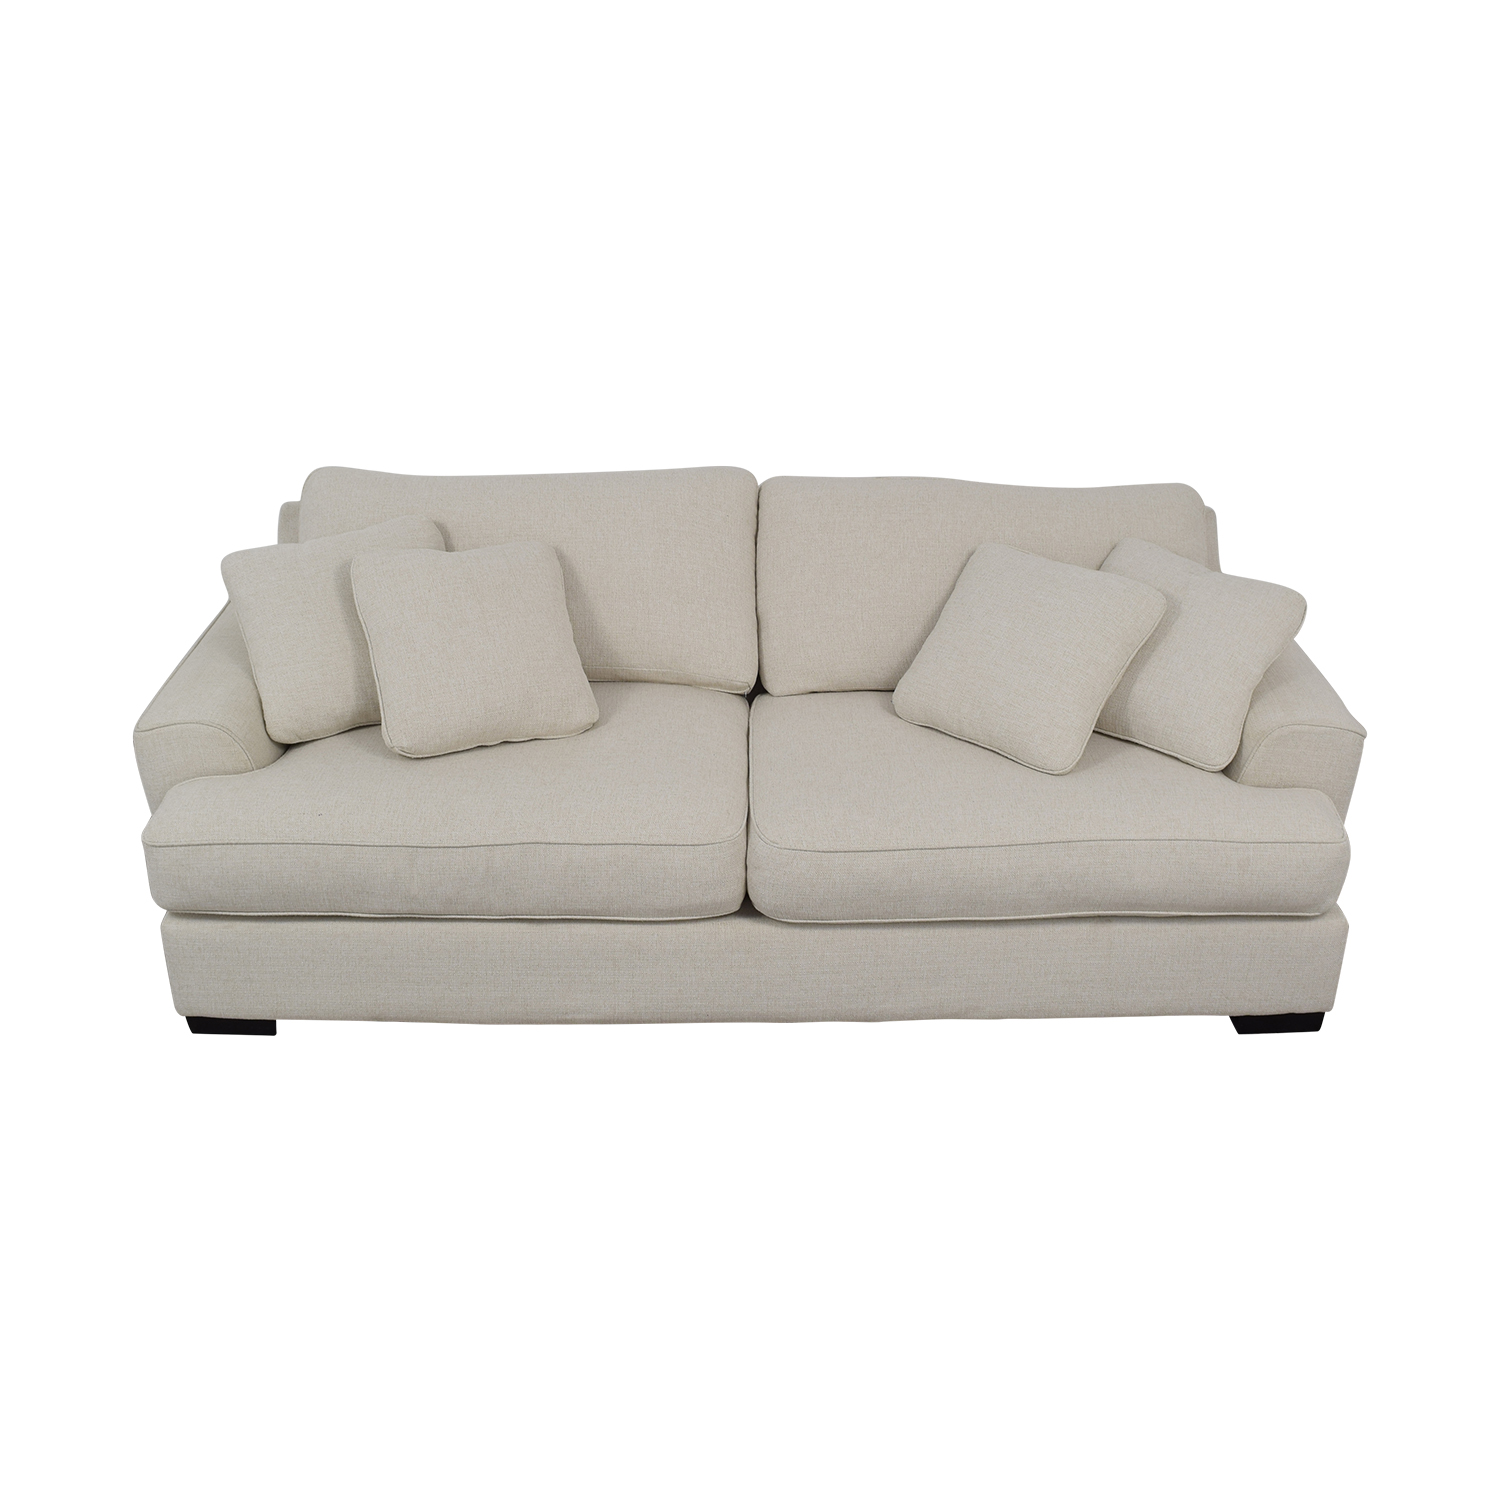 Macy's Ainsley White Two-Cushion Sofa Macy's